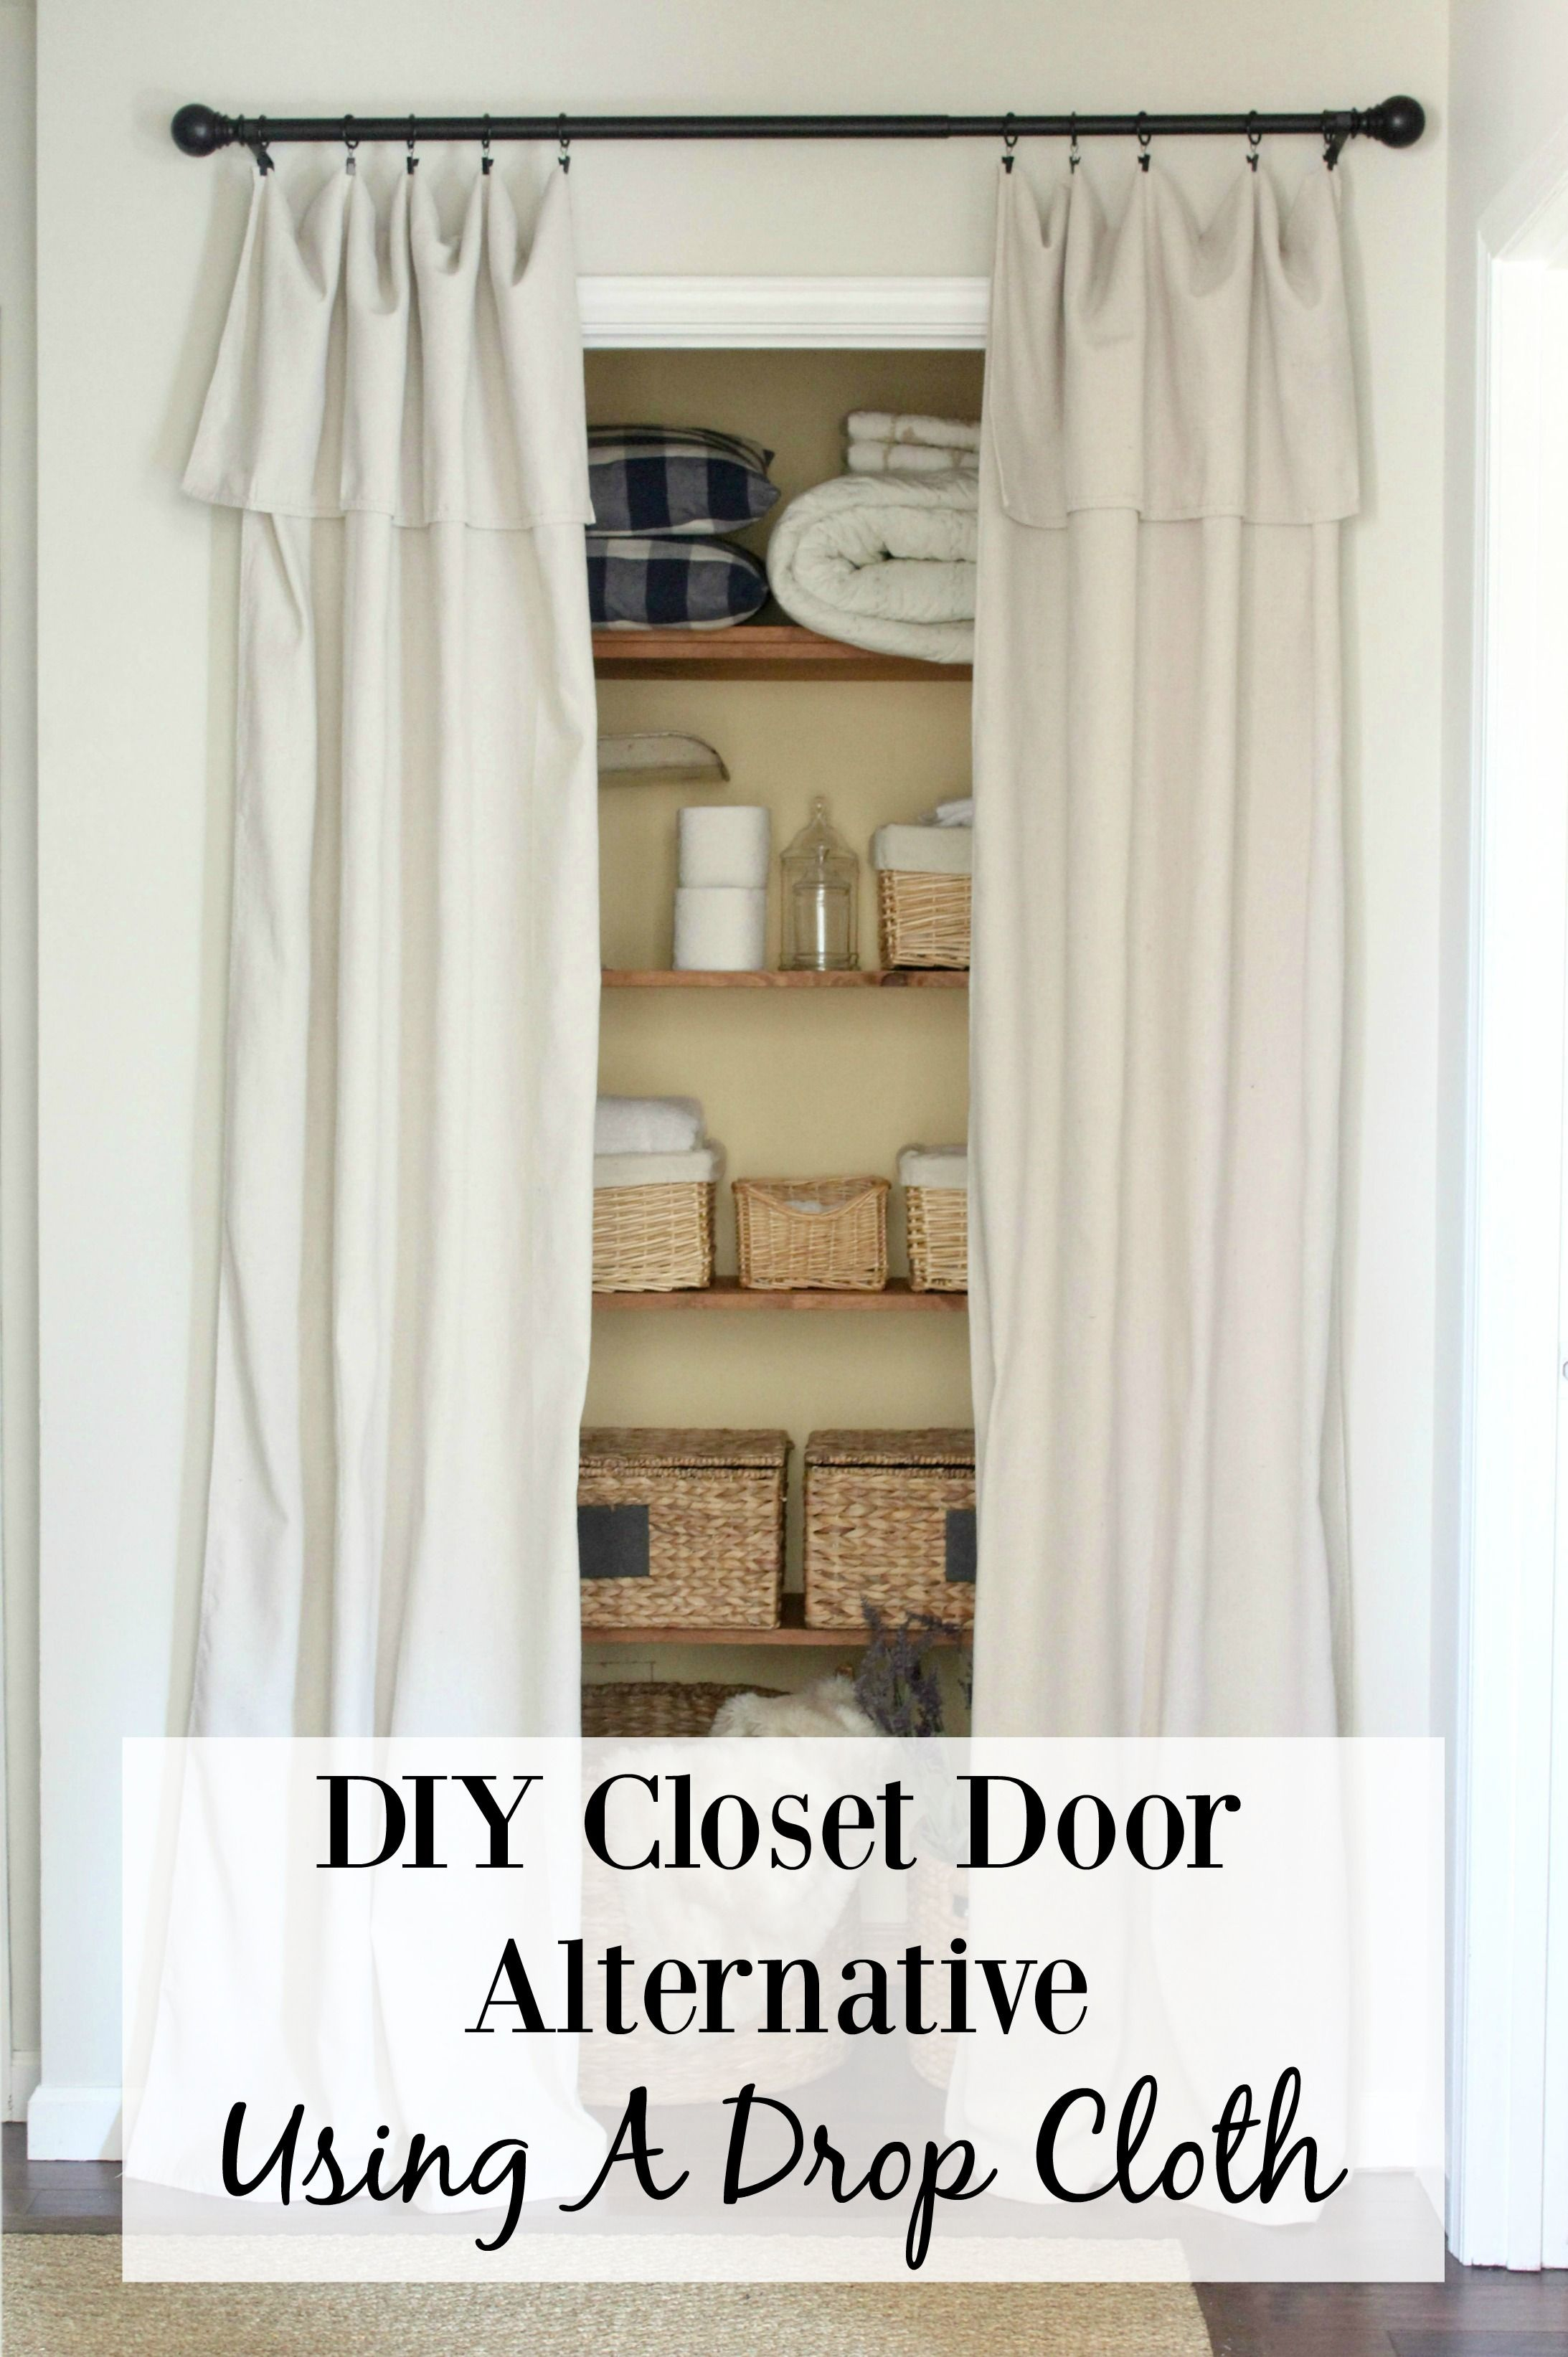 Stunning Closet Door Ideas That Can Make Your Home More Awesome Than Before